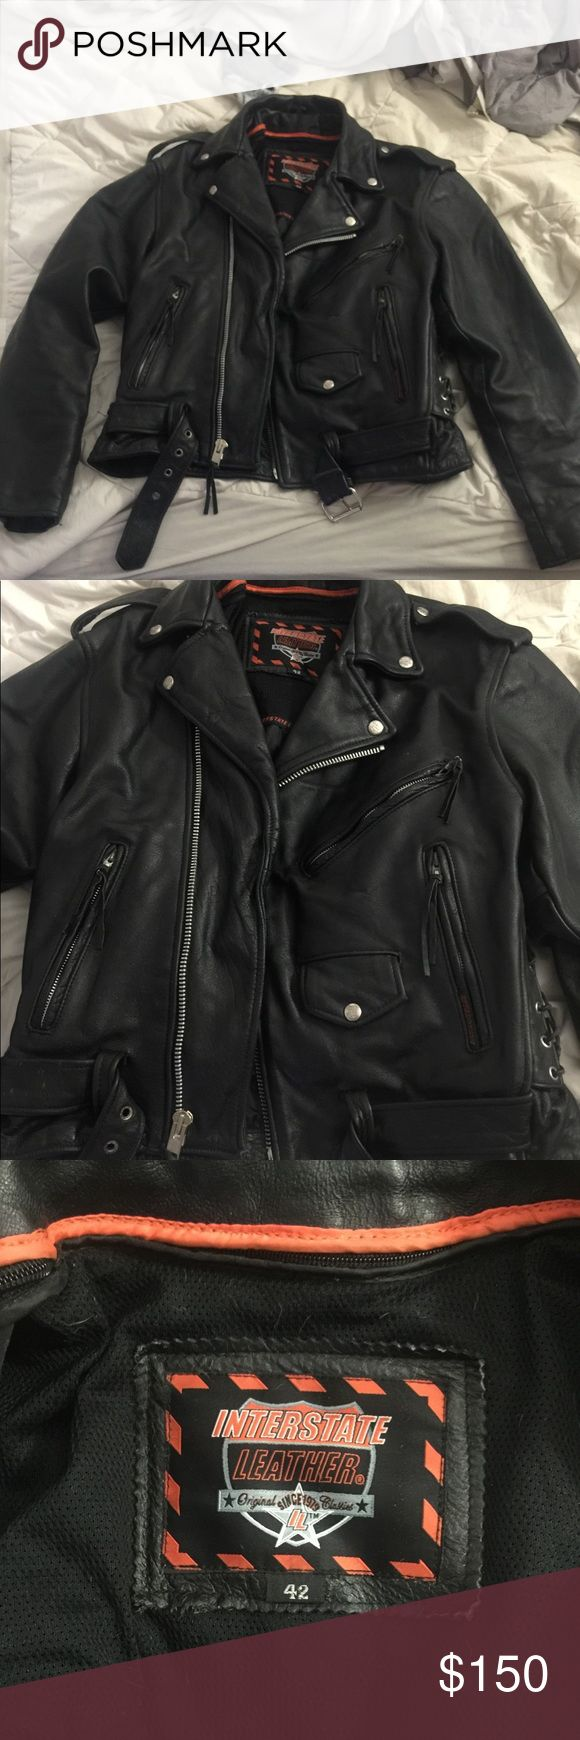 Interstate Leather Motorcycle Jacket Leather Motorcycle Jacket Motorcycle Jacket Jackets [ 1740 x 580 Pixel ]